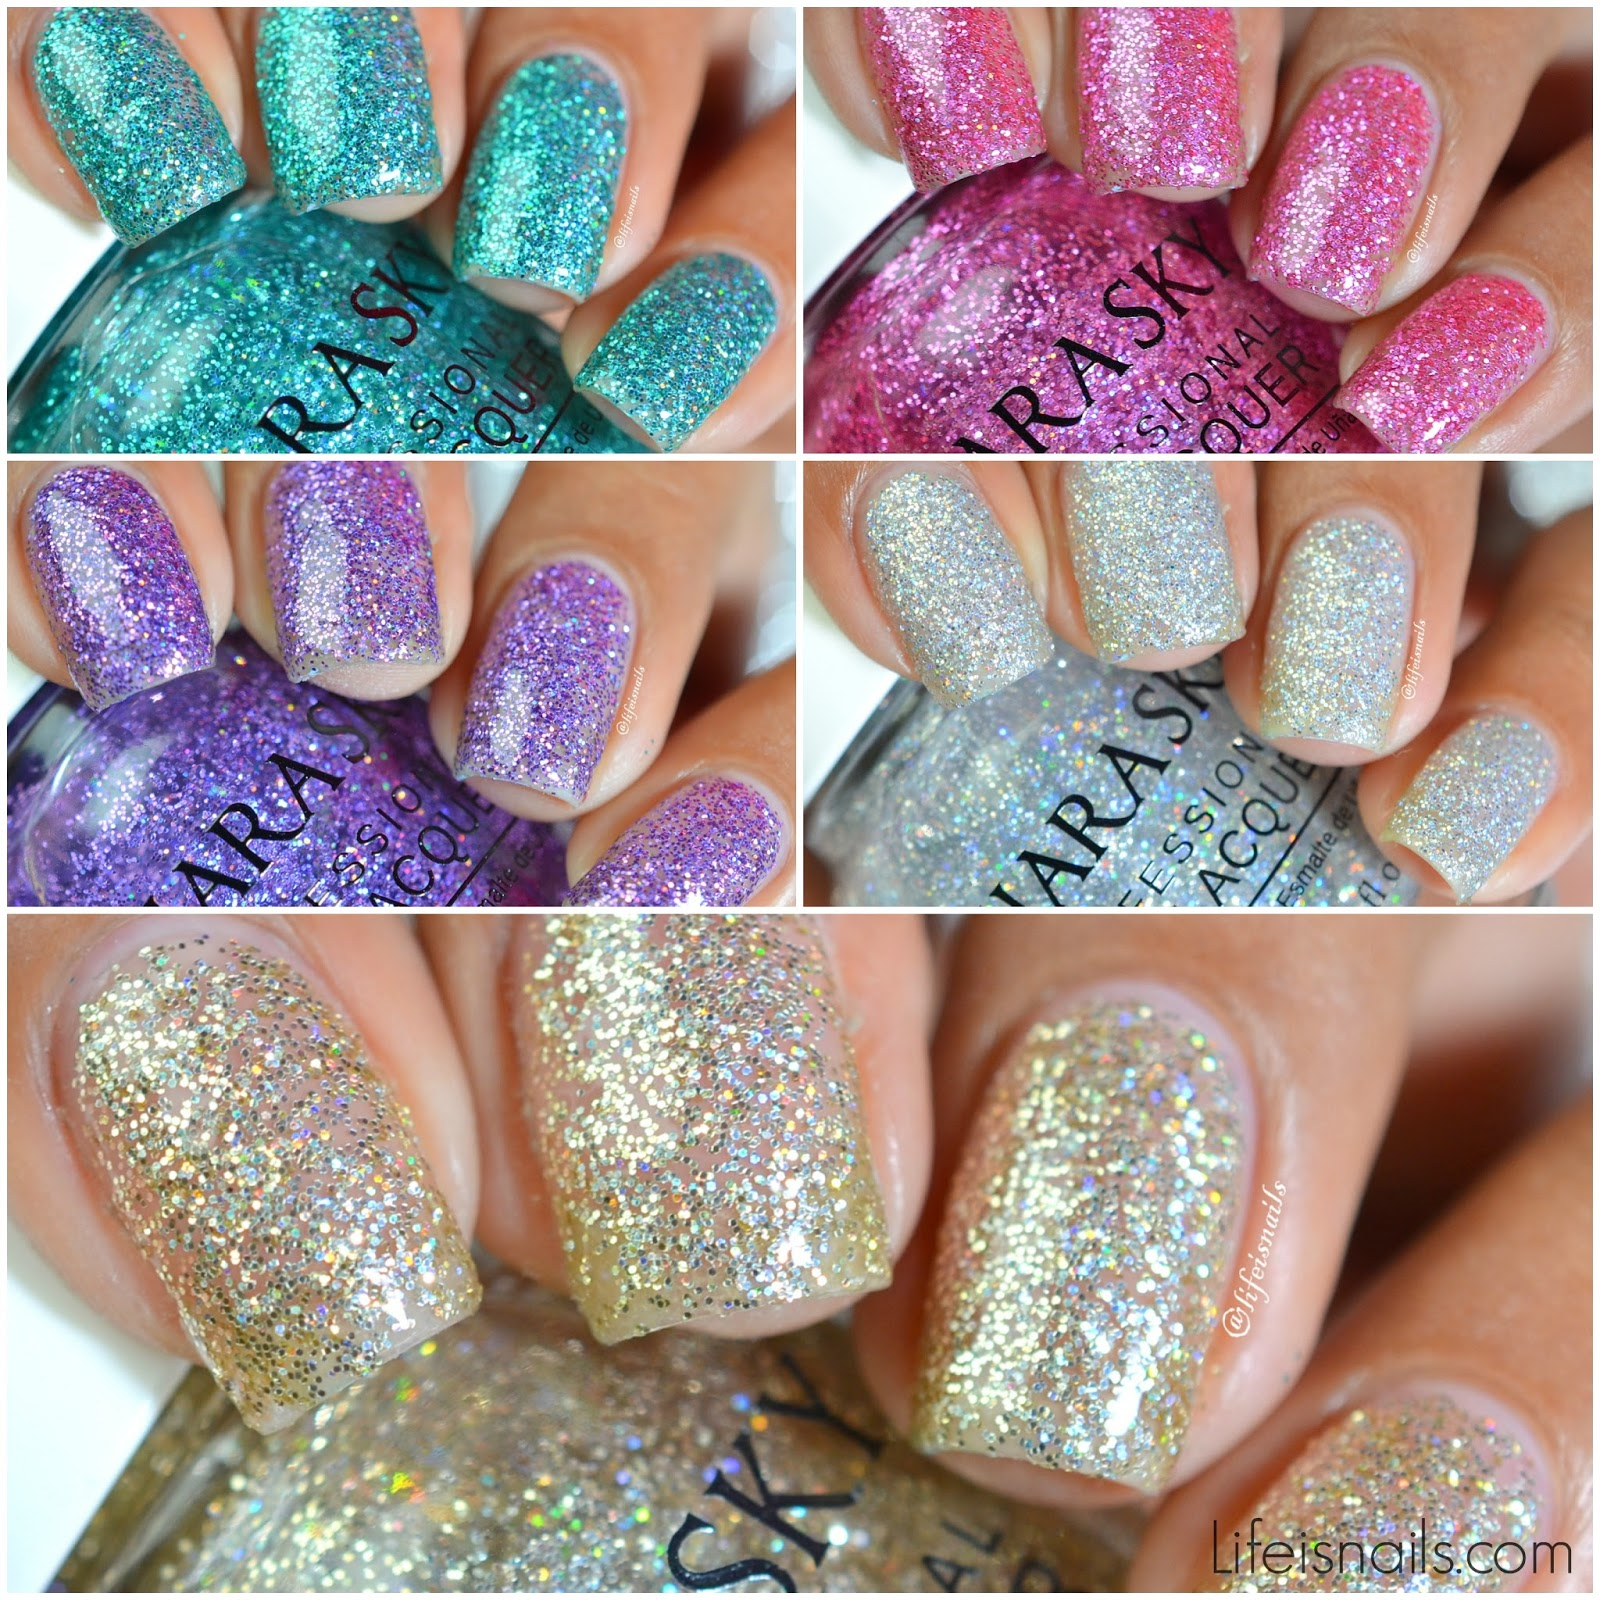 Kiara Sky City Lights Collection - Swatches And Review ~ Lifeisnails